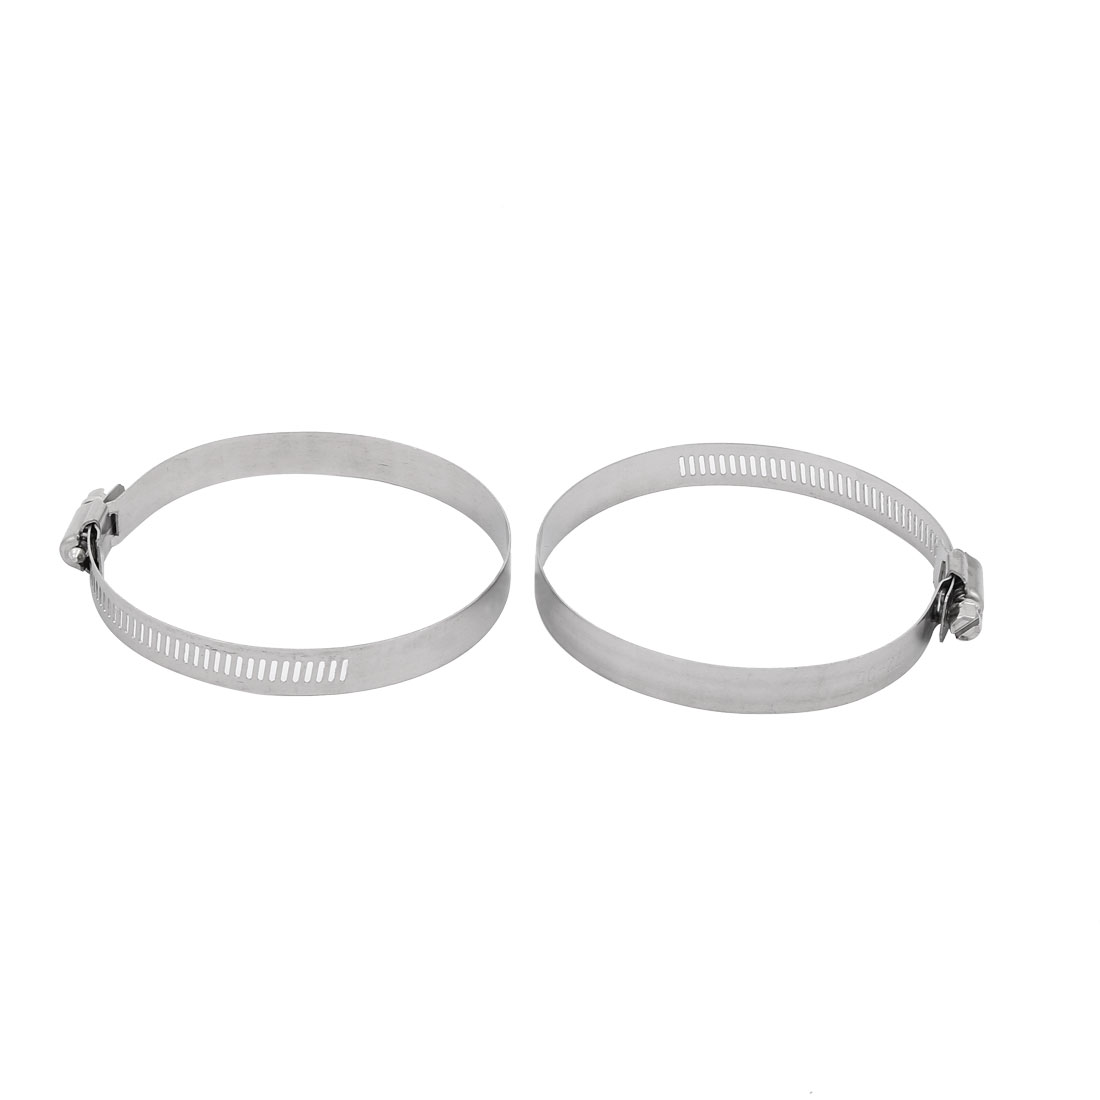 2pcs 72mm to 95mm Clamping Range 12mm Width Metal Hose Clamp